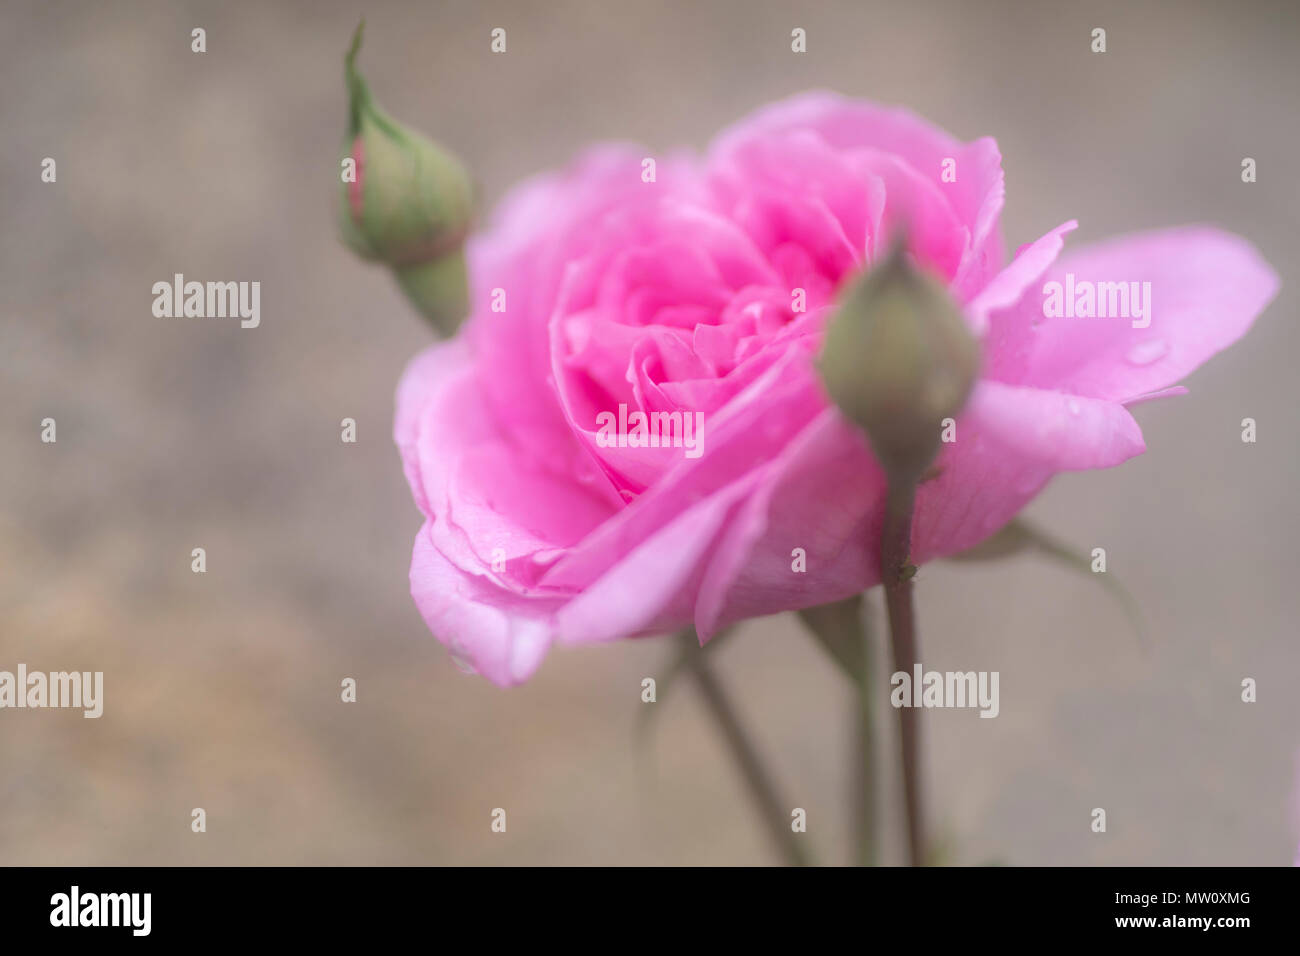 a pink peony rose growing up a wall - Stock Image